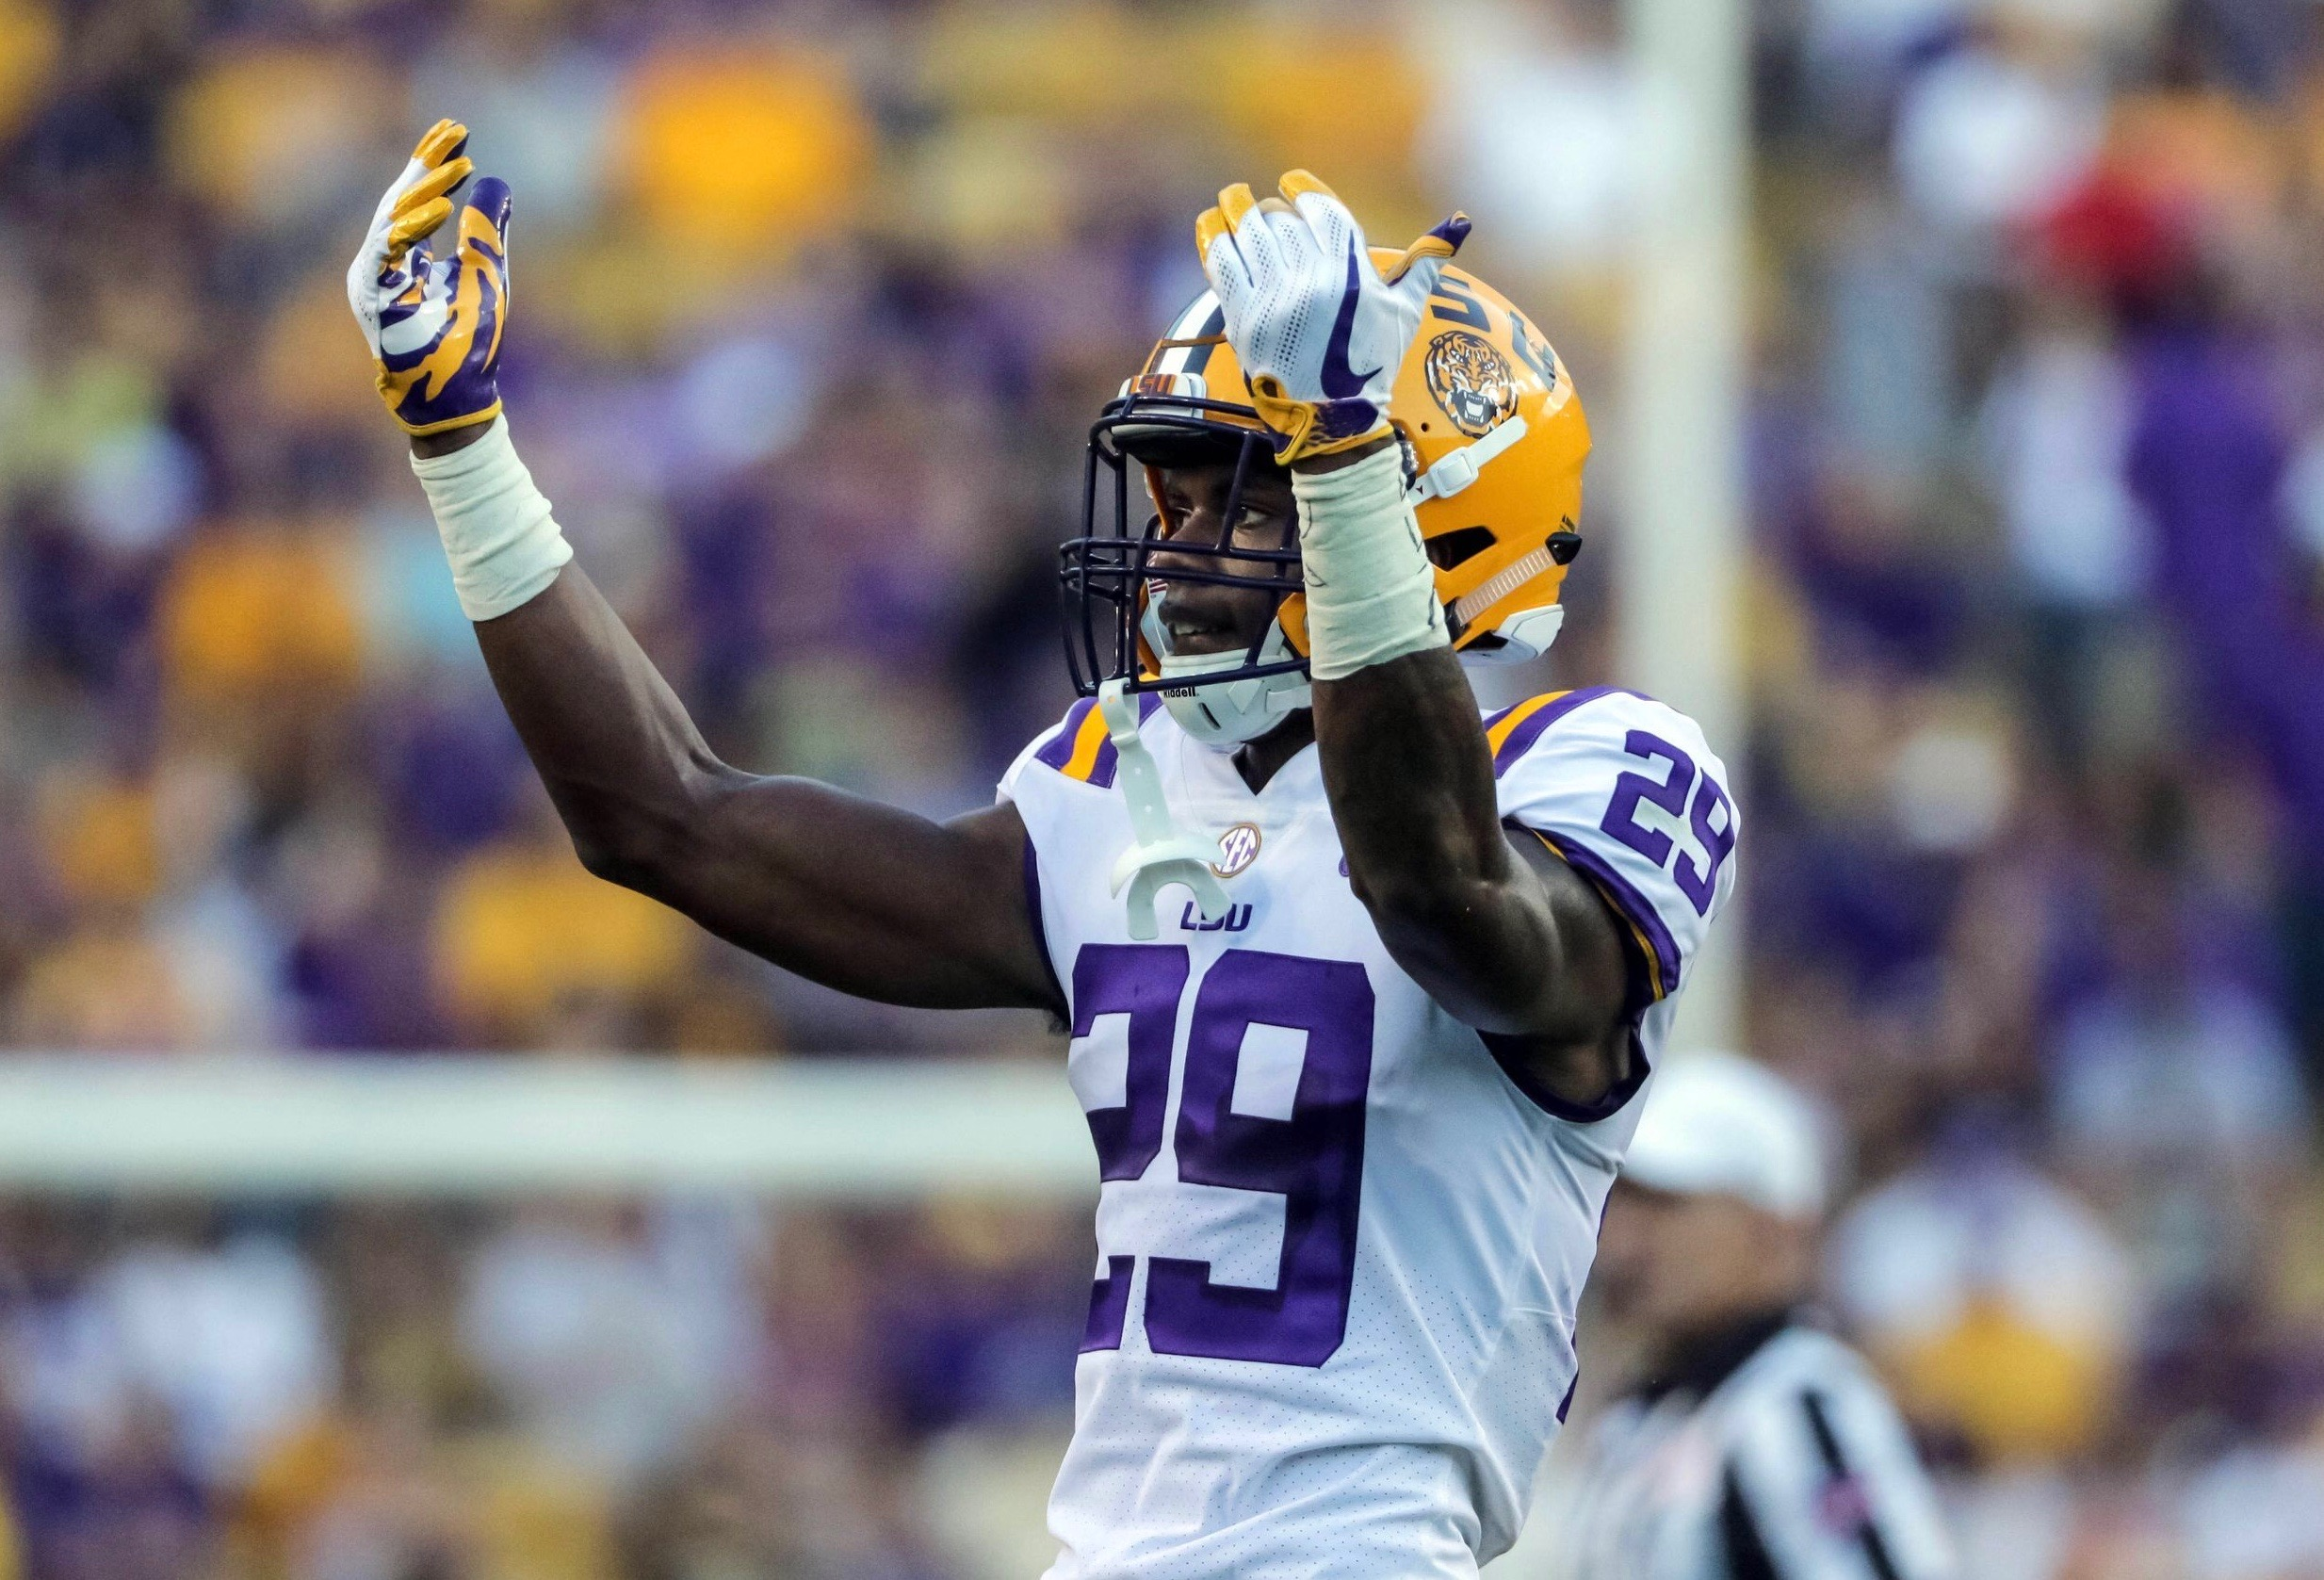 LSU Spring Practice Report: Defensive Backs